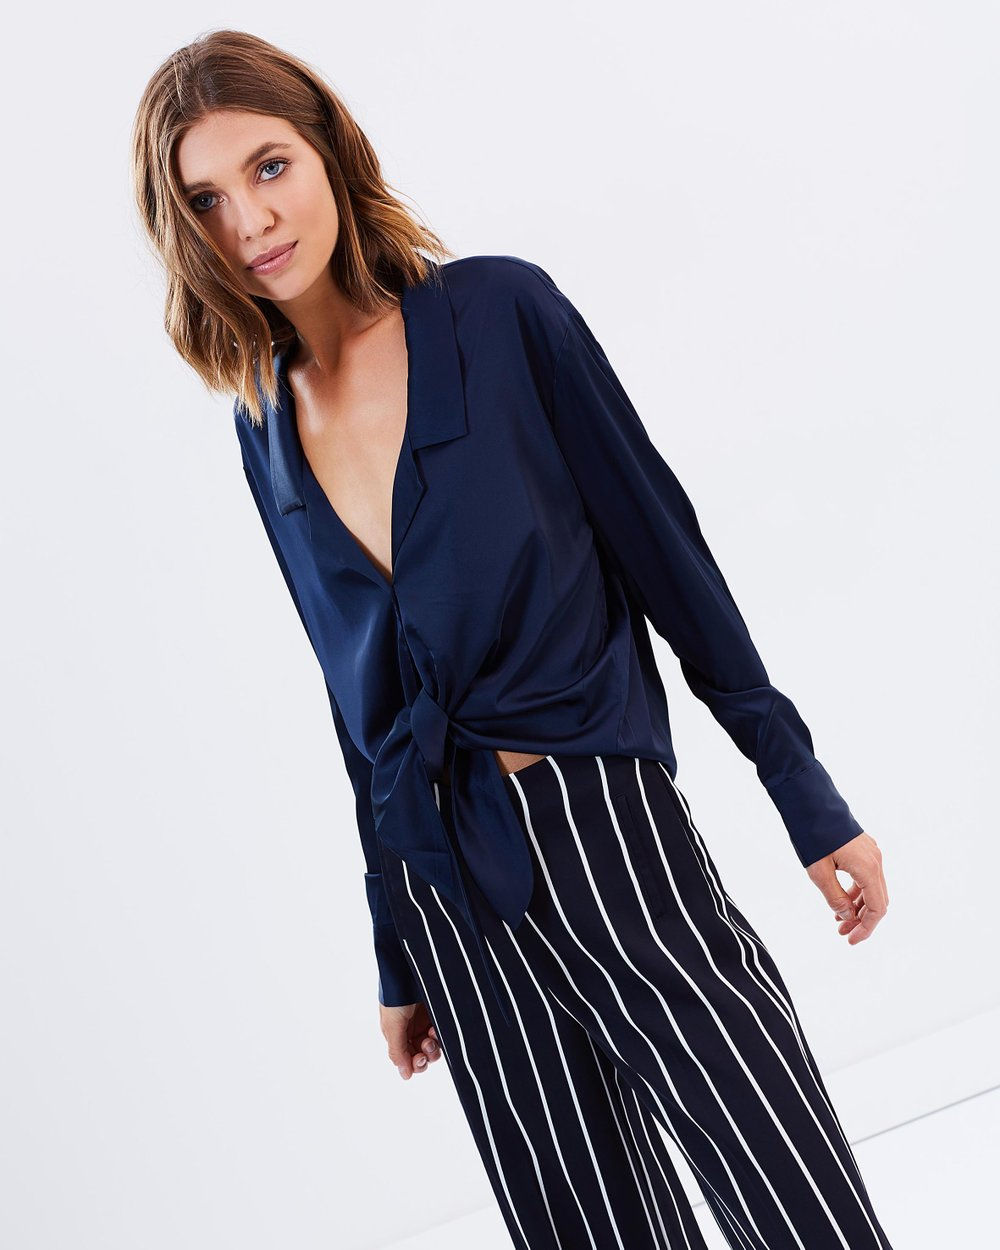 Women s fashion top 9 must haves in the wardrobe lulu rose - Women S Fashion Top 9 Must Haves In The Wardrobe Lulu Rose 0